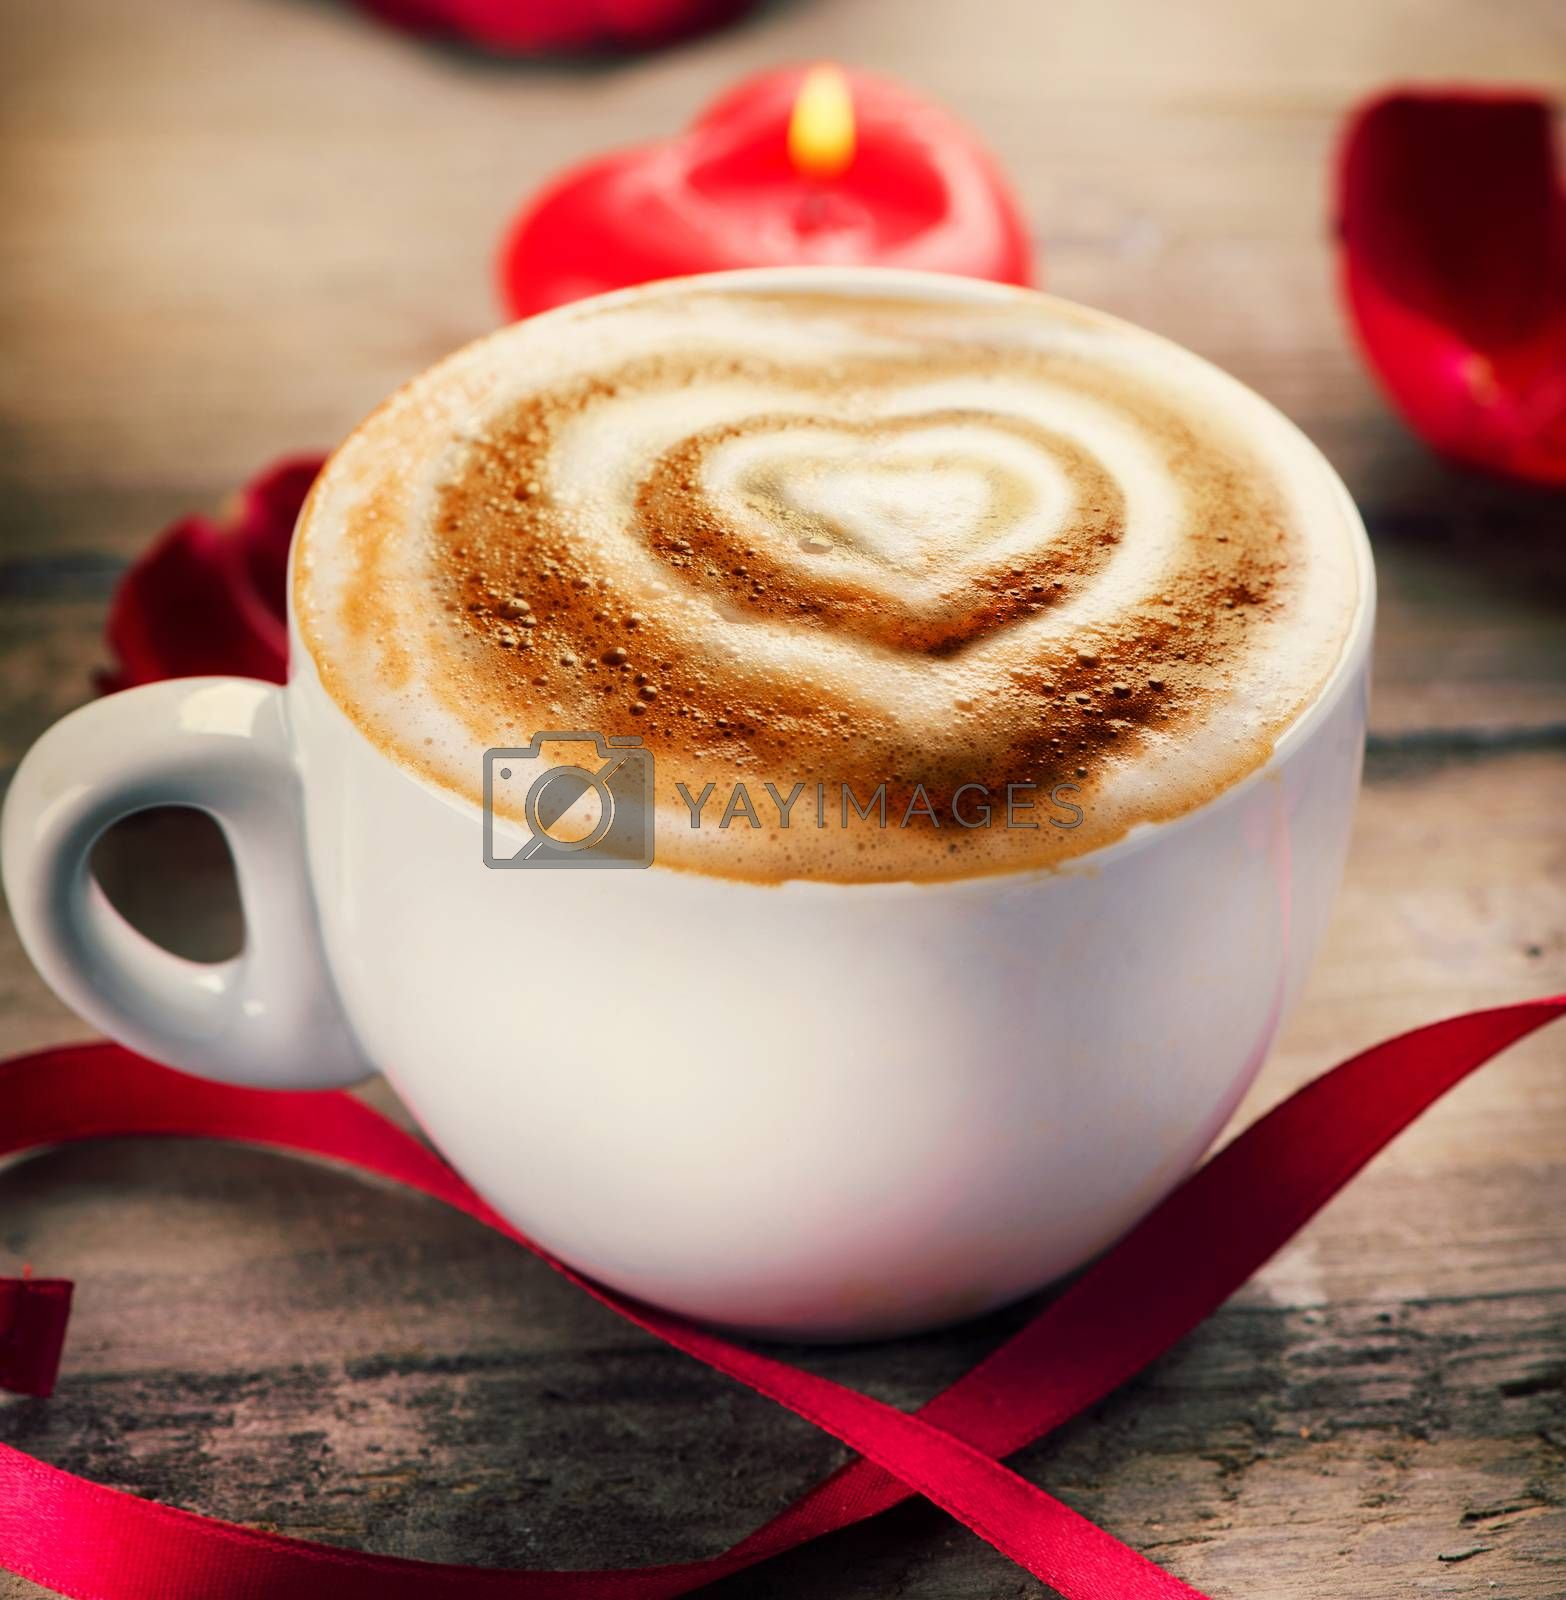 Valentine's Day Coffee or Cappuccino with heart on foam by Subbotina Anna